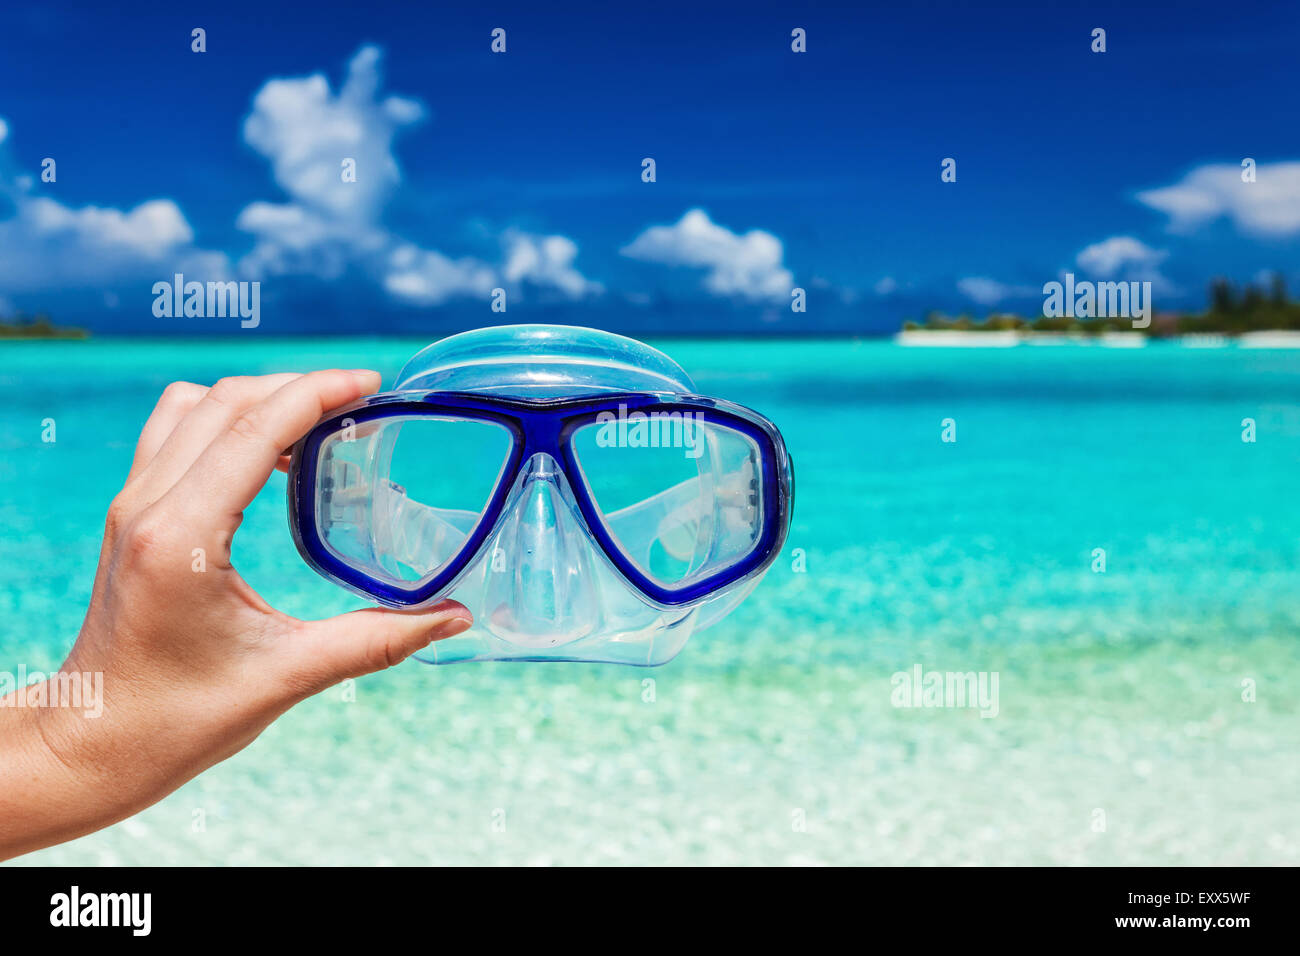 Hand holding snorkel googles against blurred beach and blue sky - Stock Image